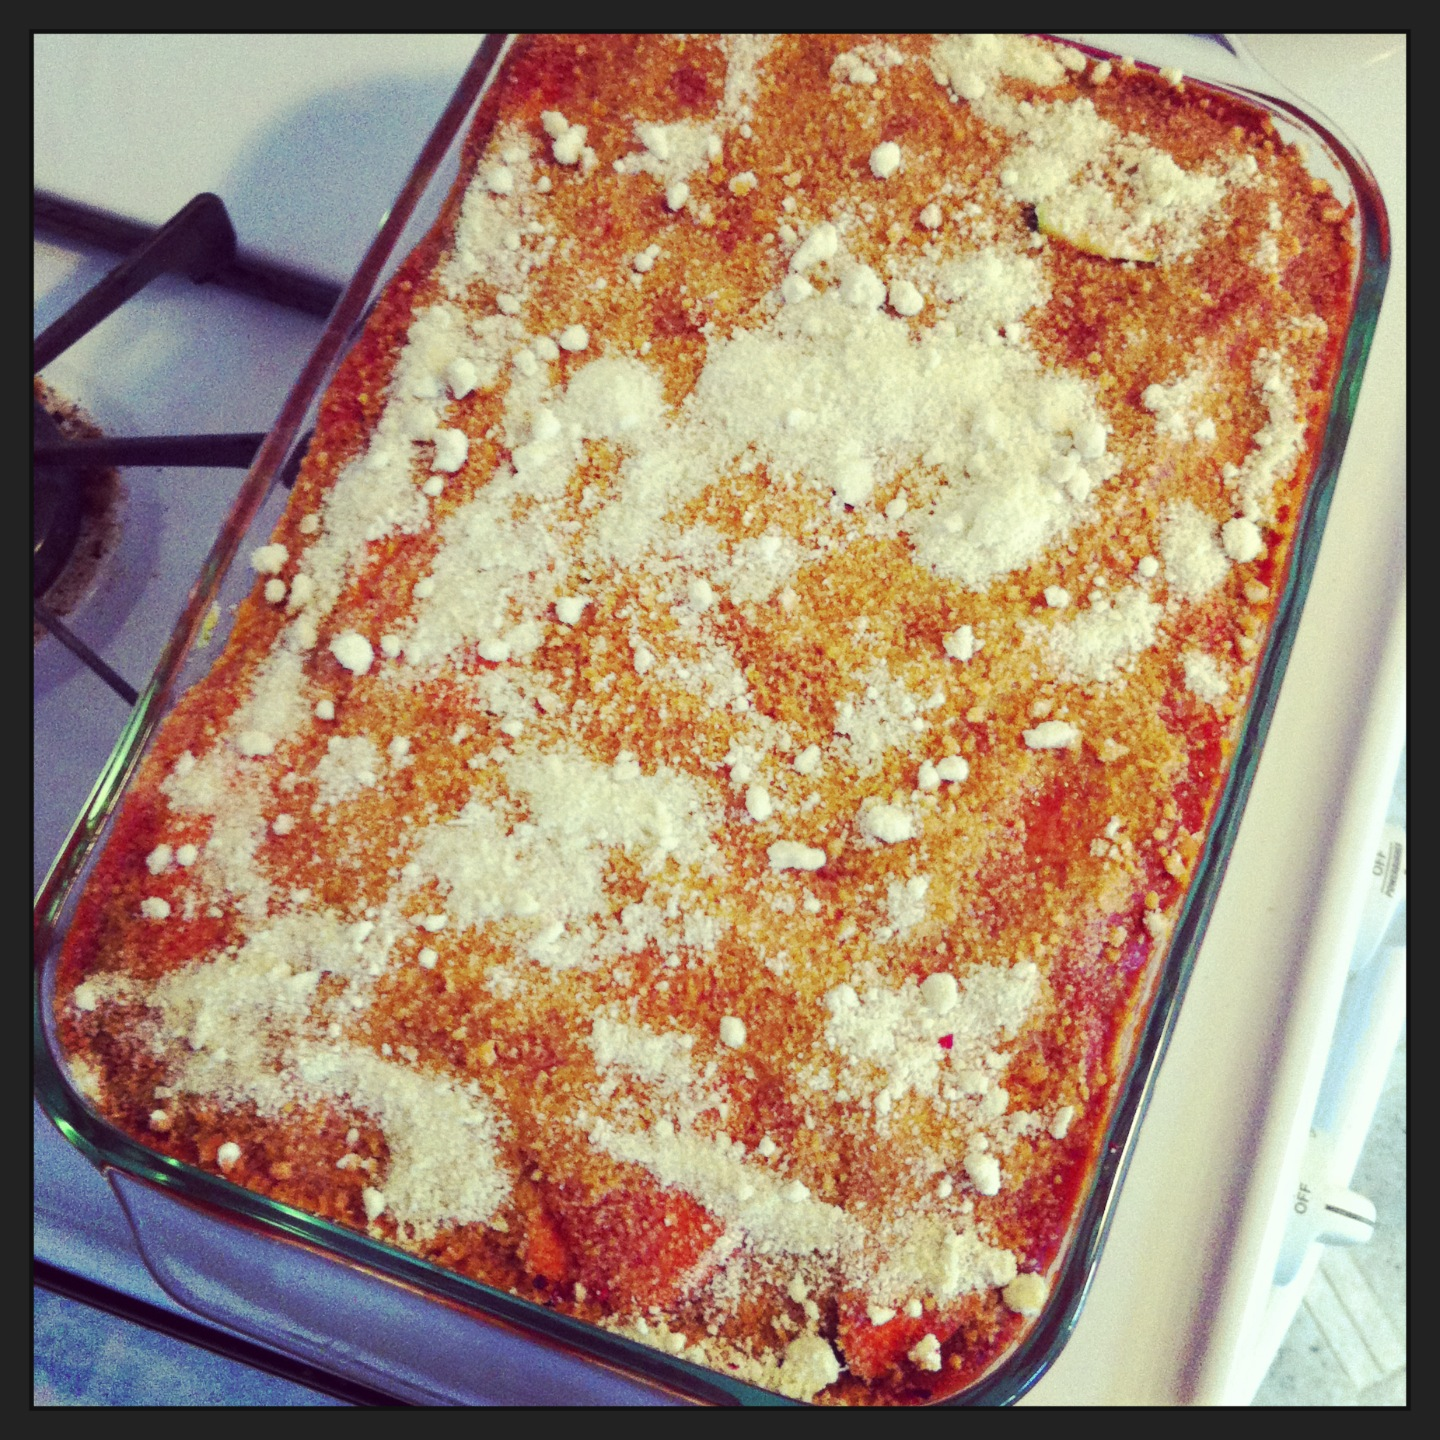 Tonight's lasagna!